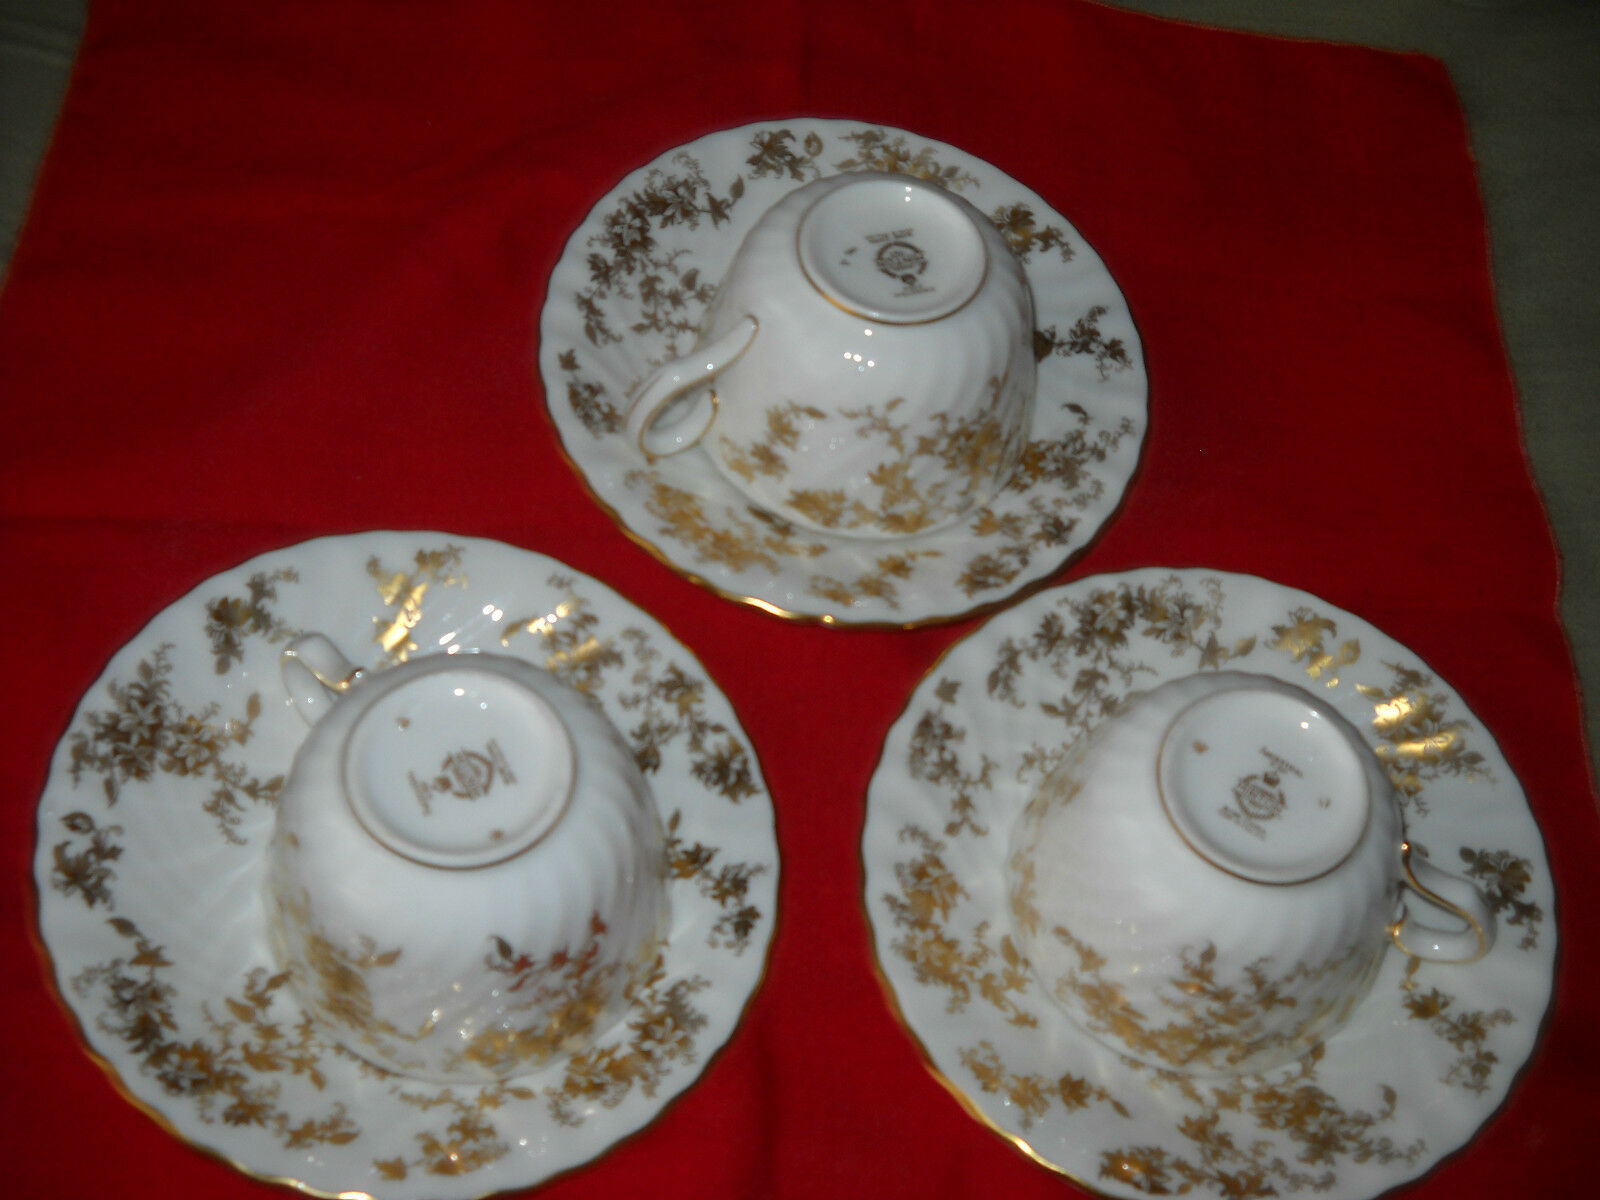 MINTON ANCESTRAL Cups and Saucers (6 sets available) - $25.99